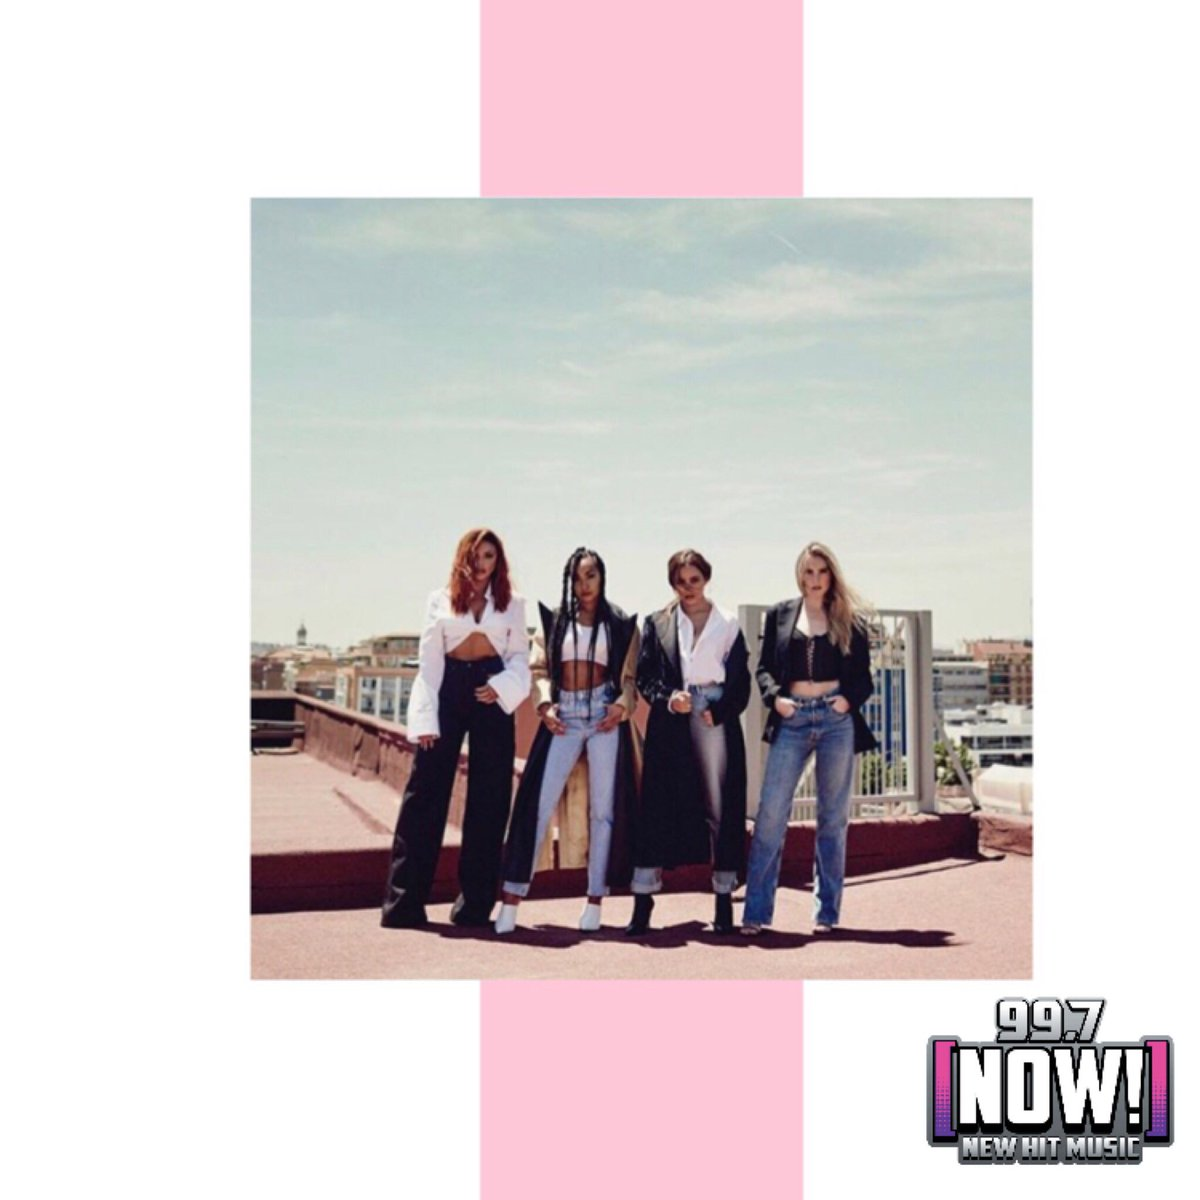 Want to be invited to our exclusive #LM5 listening party? Here's how to enter! Create something showing us how much you love @LittleMix with the hashtag, #LM5x997nowx997now. Post it on Twitter or Instagram, tag us & BOOM! You're entered ✨